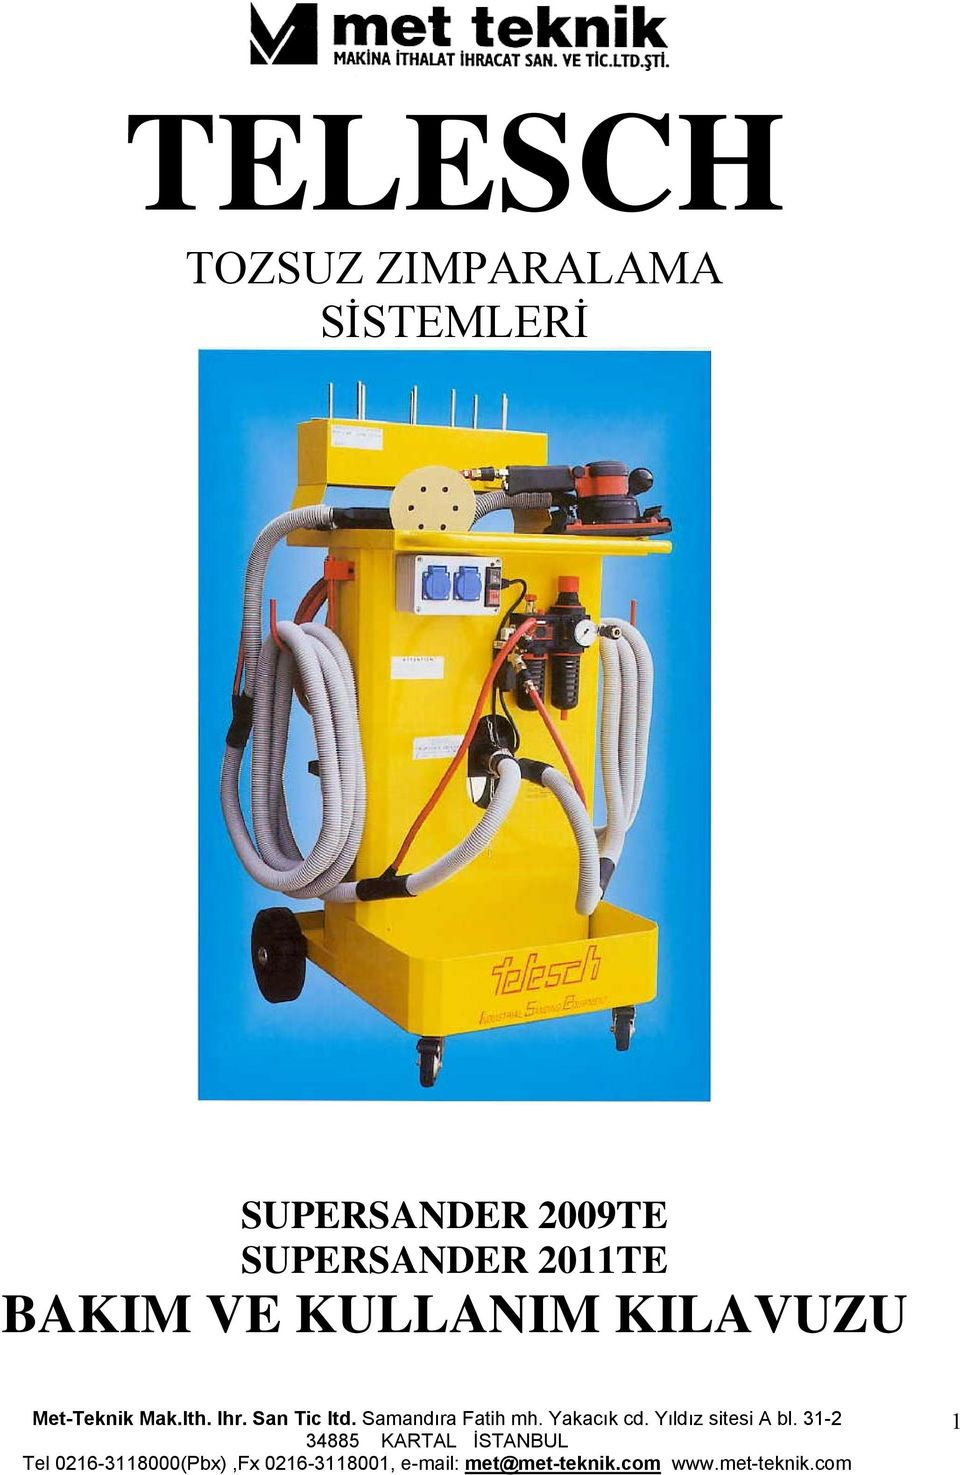 SUPERSANDER 2009TE